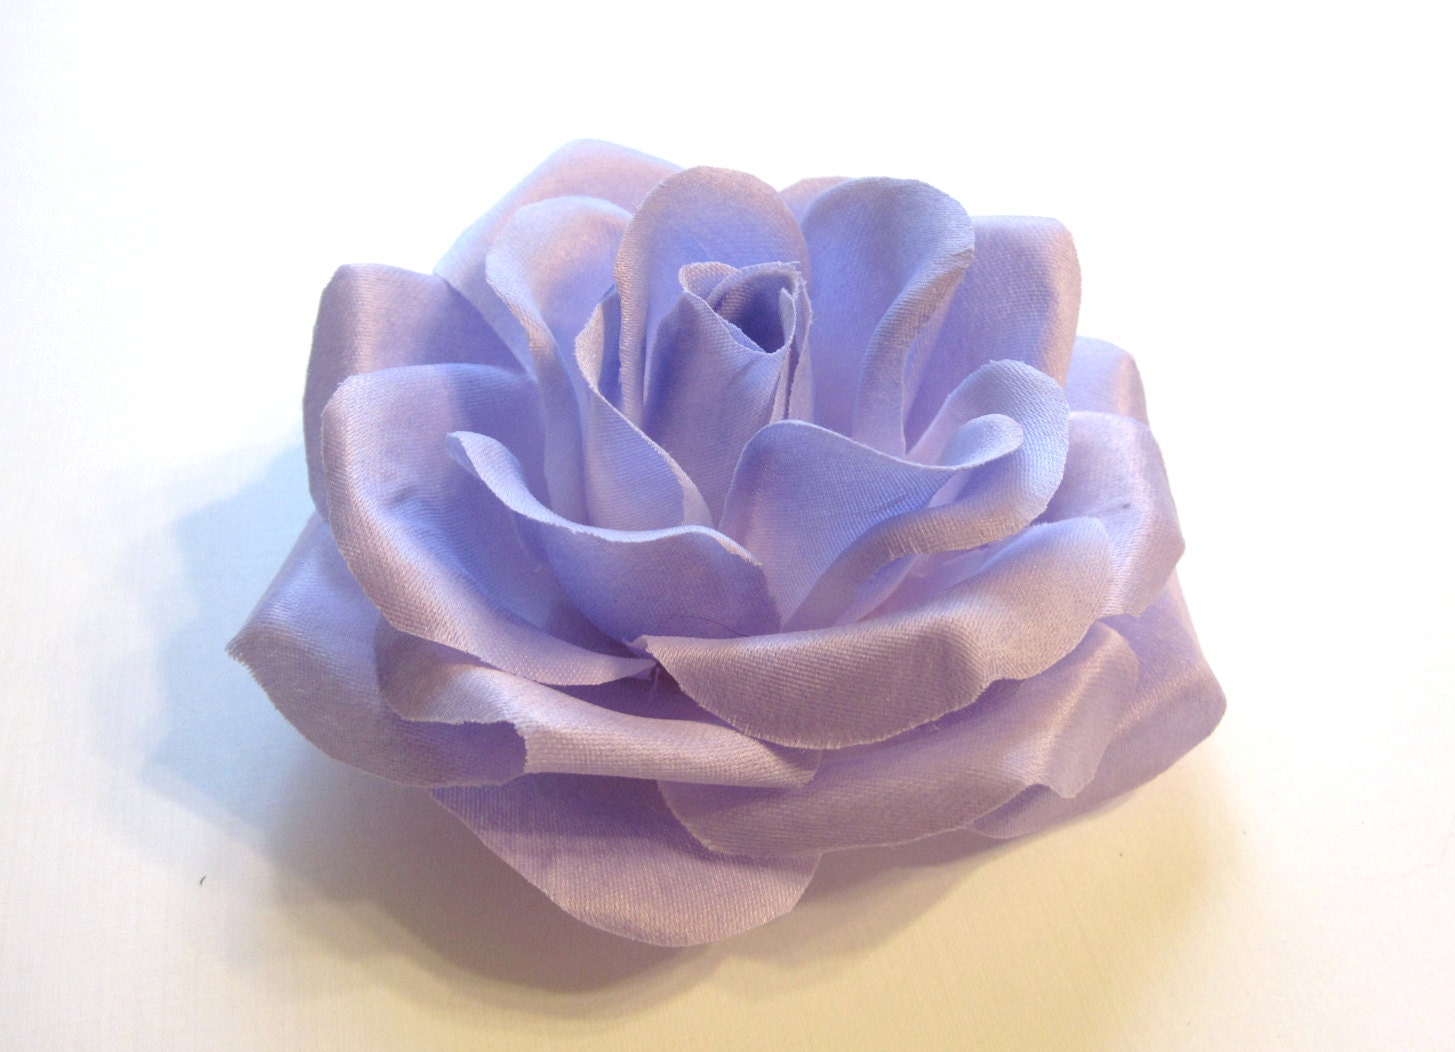 Lavender Rose - Lilac Fabric Flower Hair Accessory or Pin - Bride or Bridesmaid - HairFair